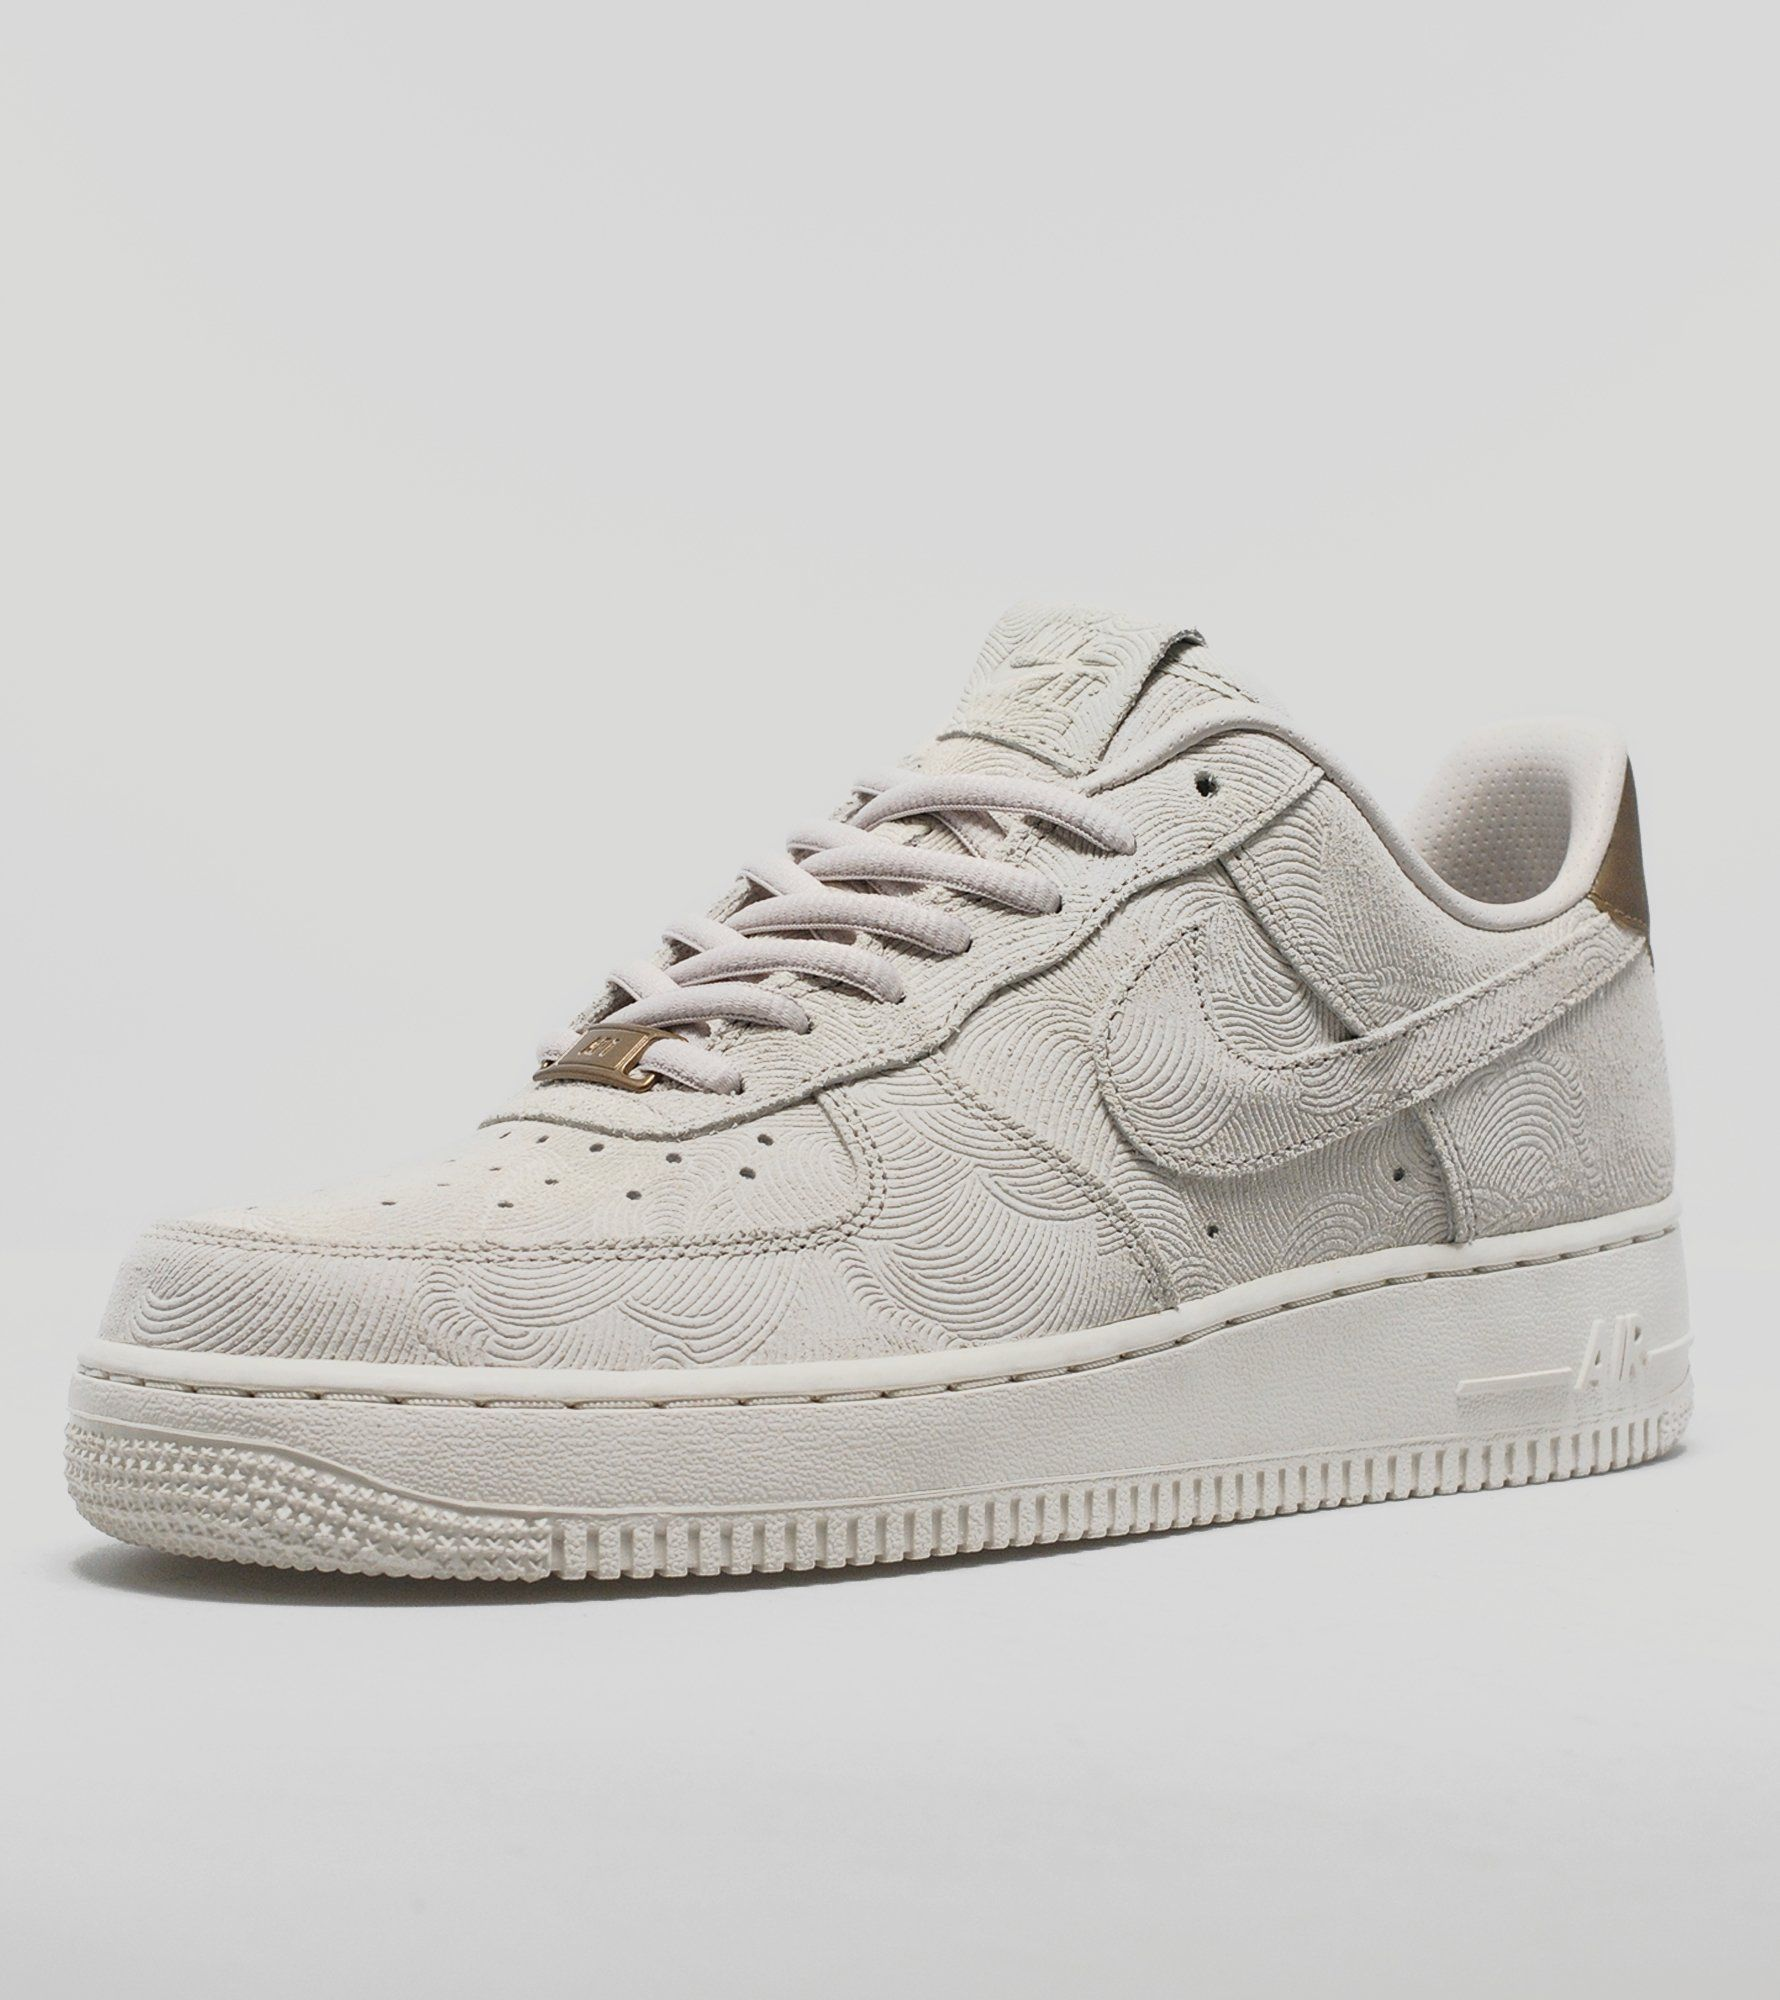 Nike Air Force 1 Suede Womens - find out more on our site. Find ...